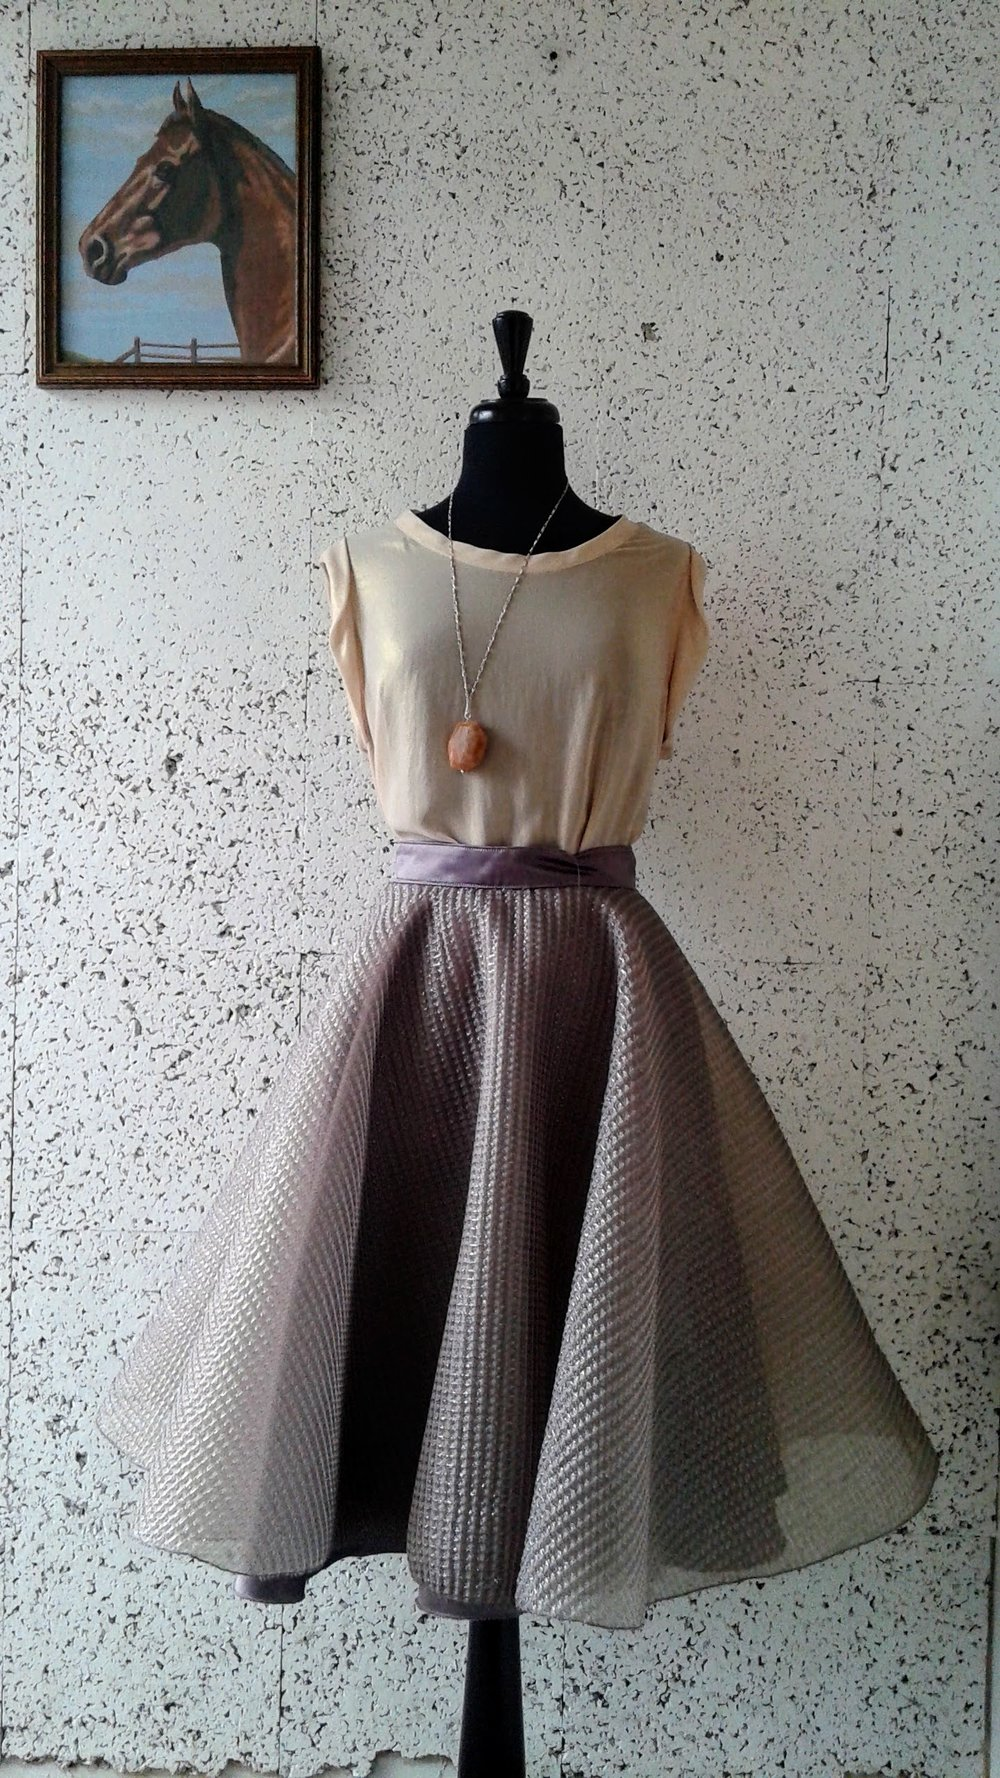 Trisha Pasnak skirt; Size 0, $75. Tara Jarmon top; Size M, $30. Necklace $24